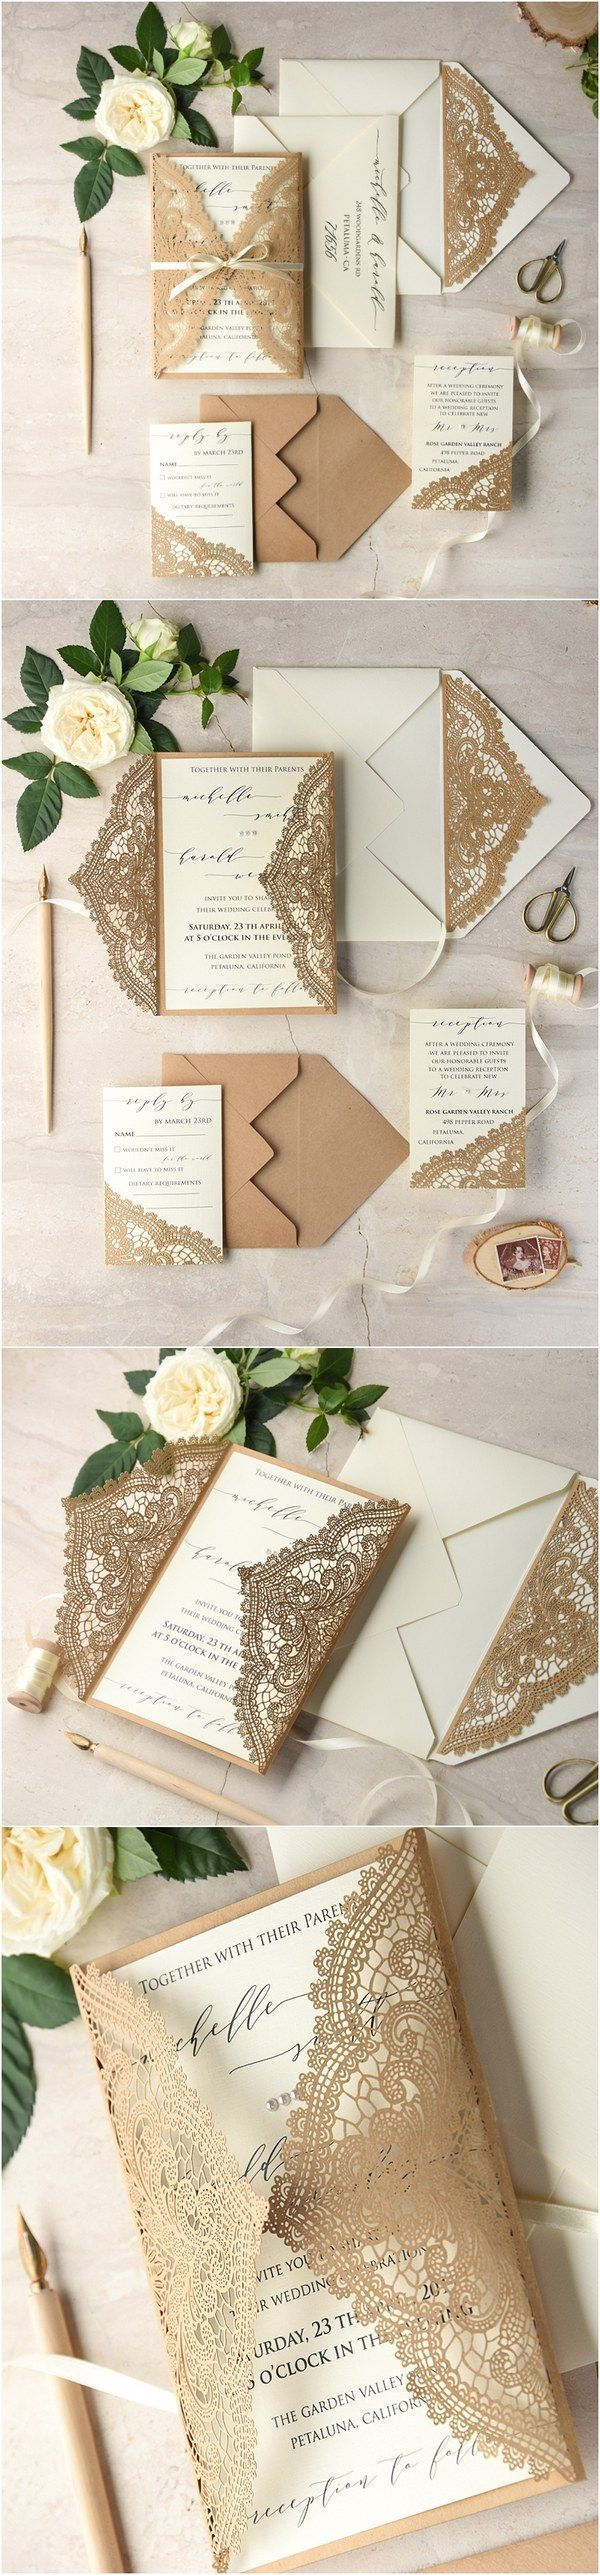 We Love Laser Cut Wedding Invitations 4lovepolkadots